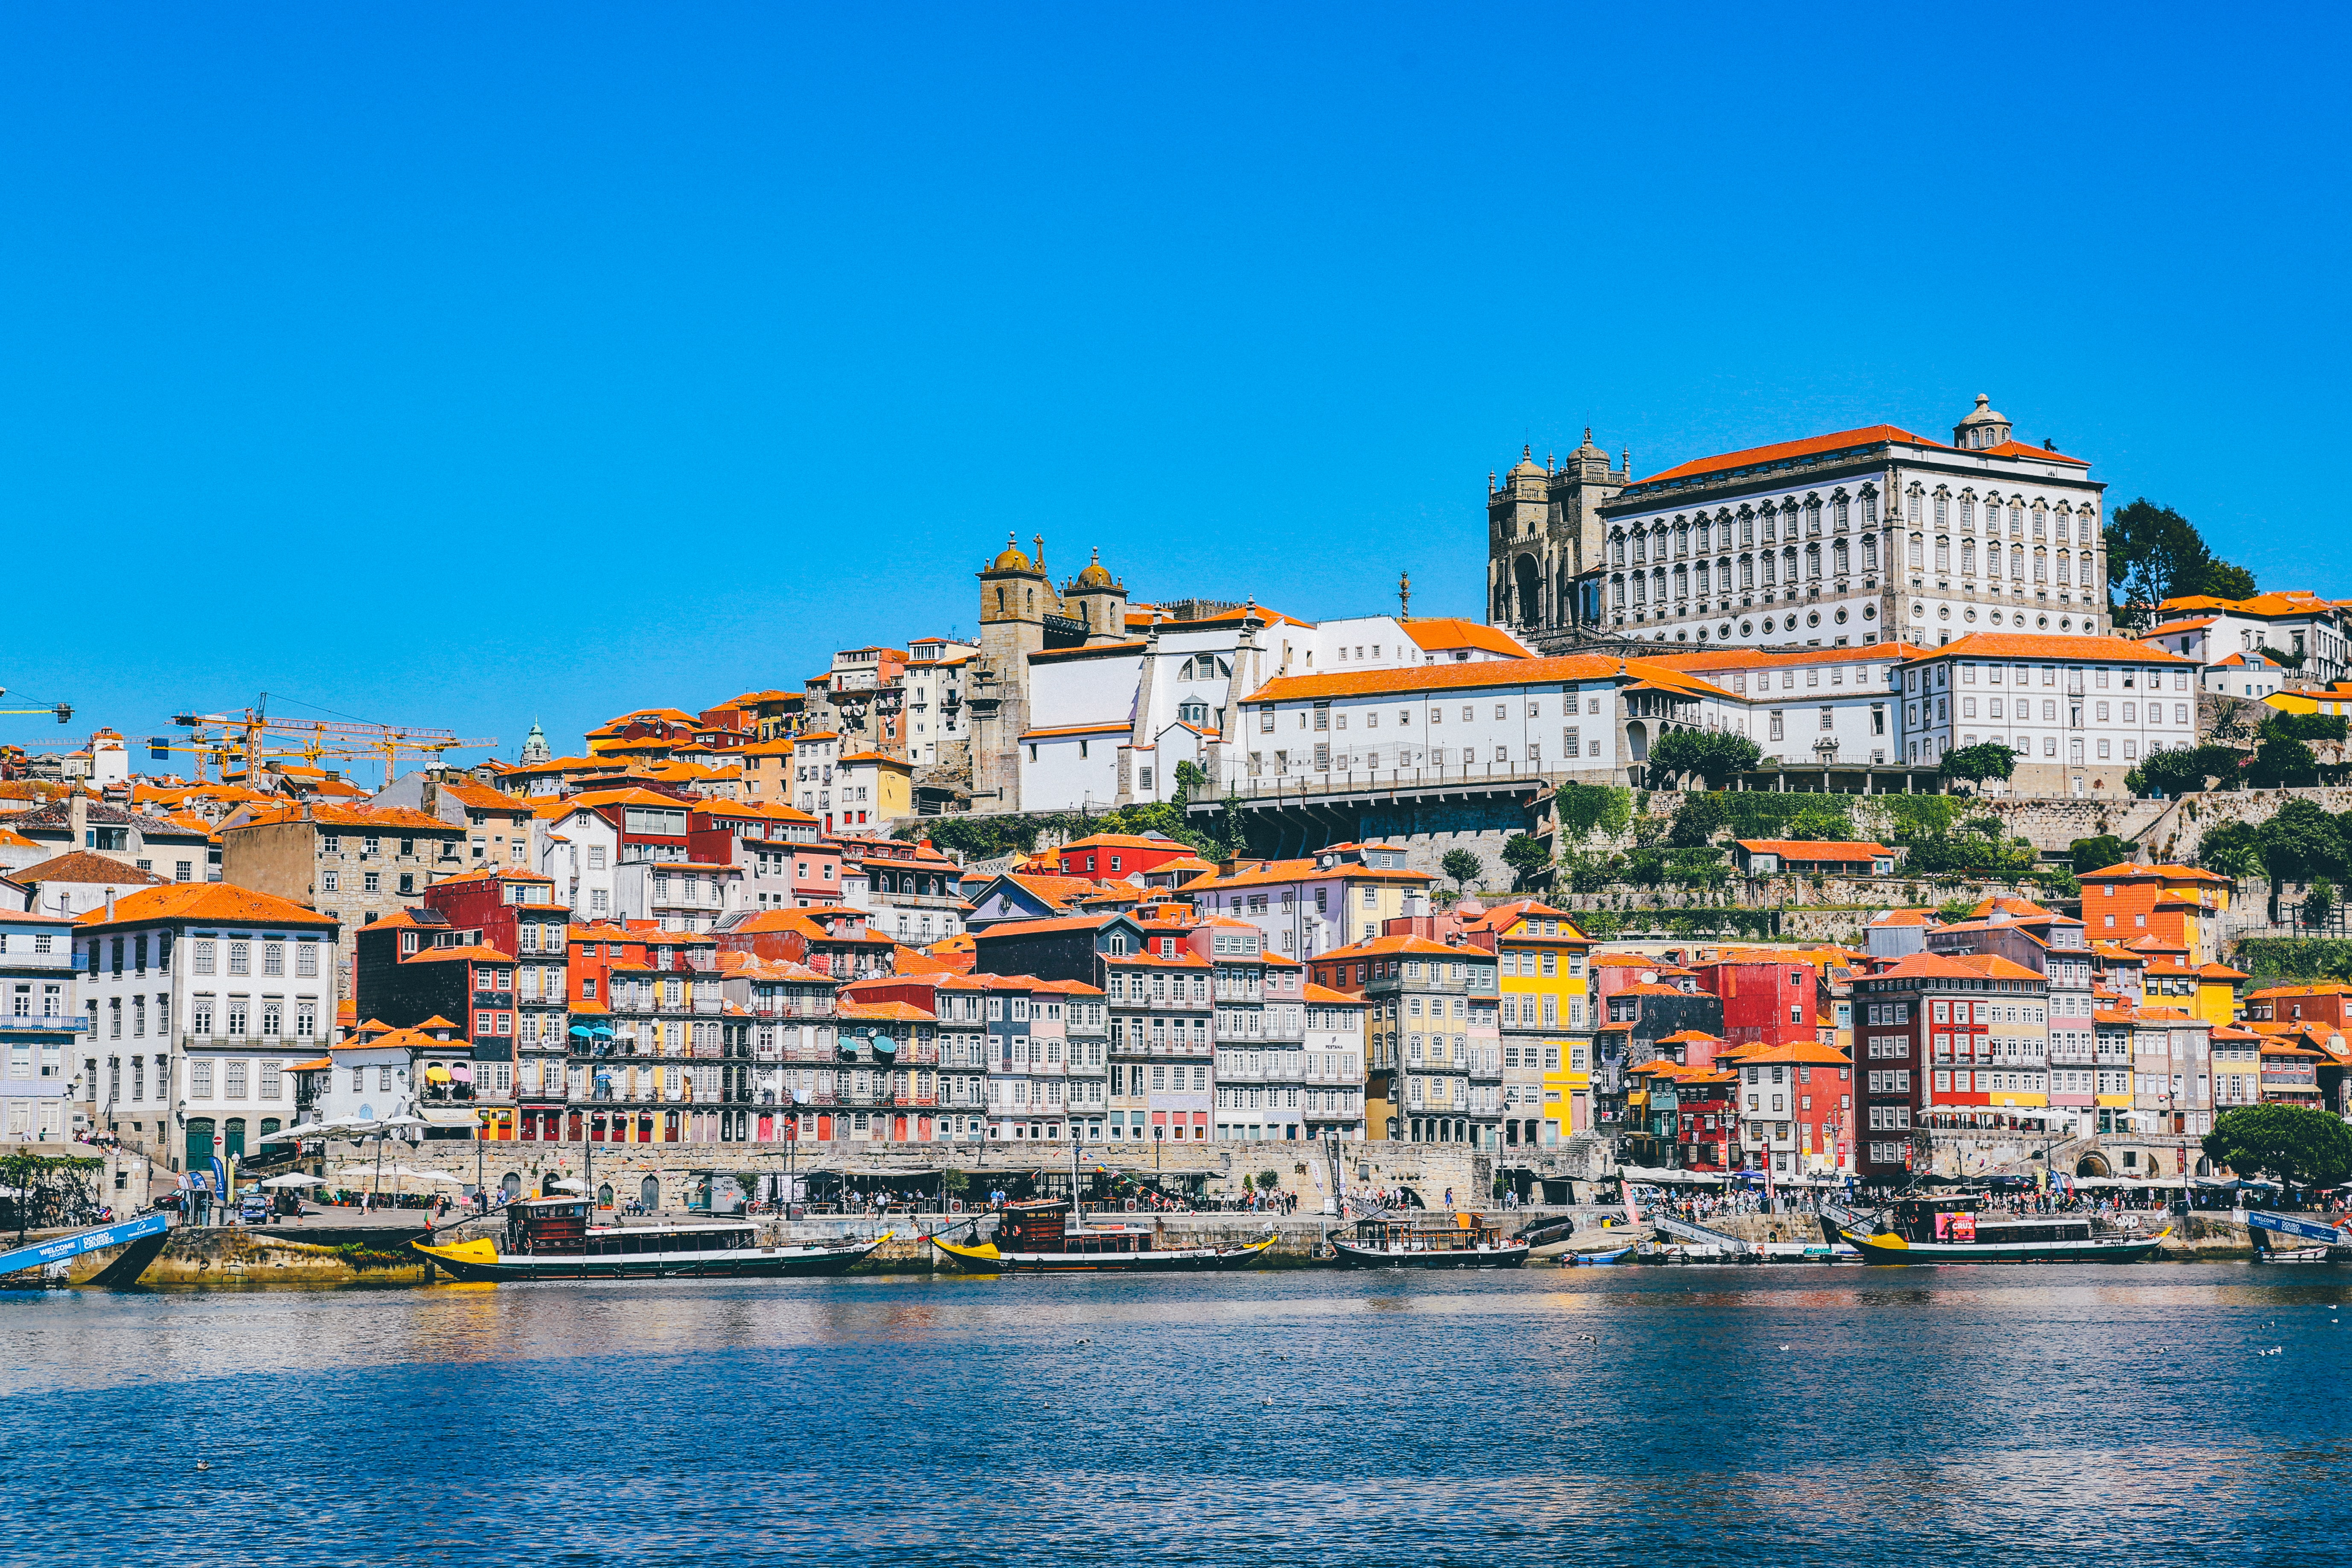 How to Apply for a Schengen Portugal Visa